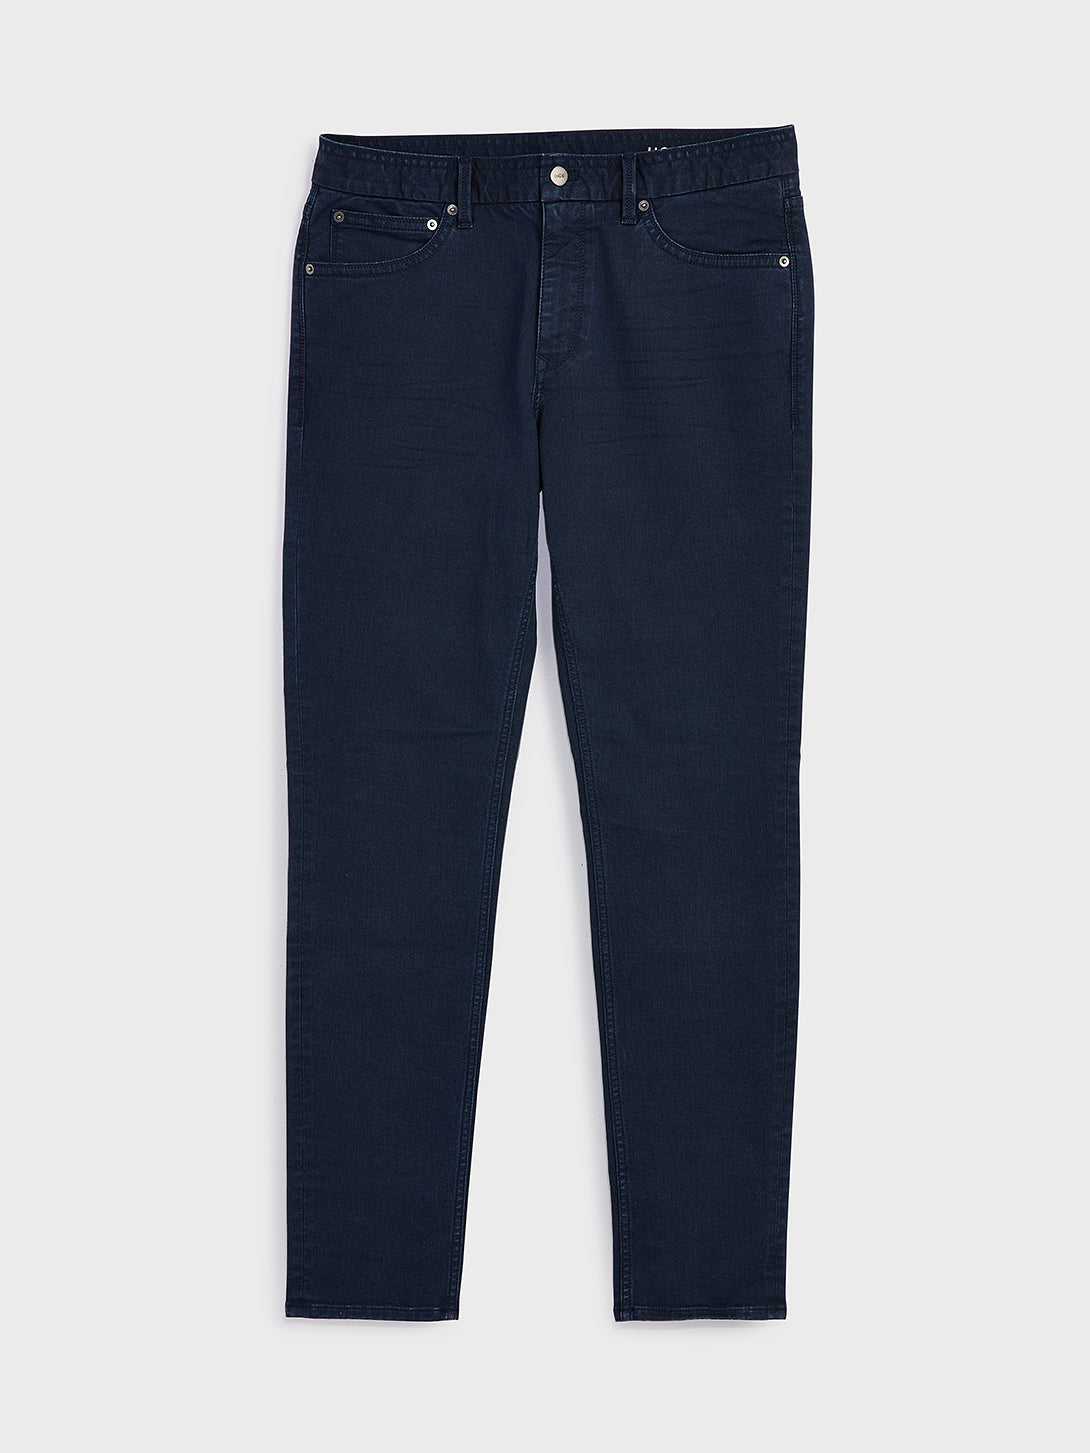 ONS Clothing Men's pants in DK INDIGO black friday deals